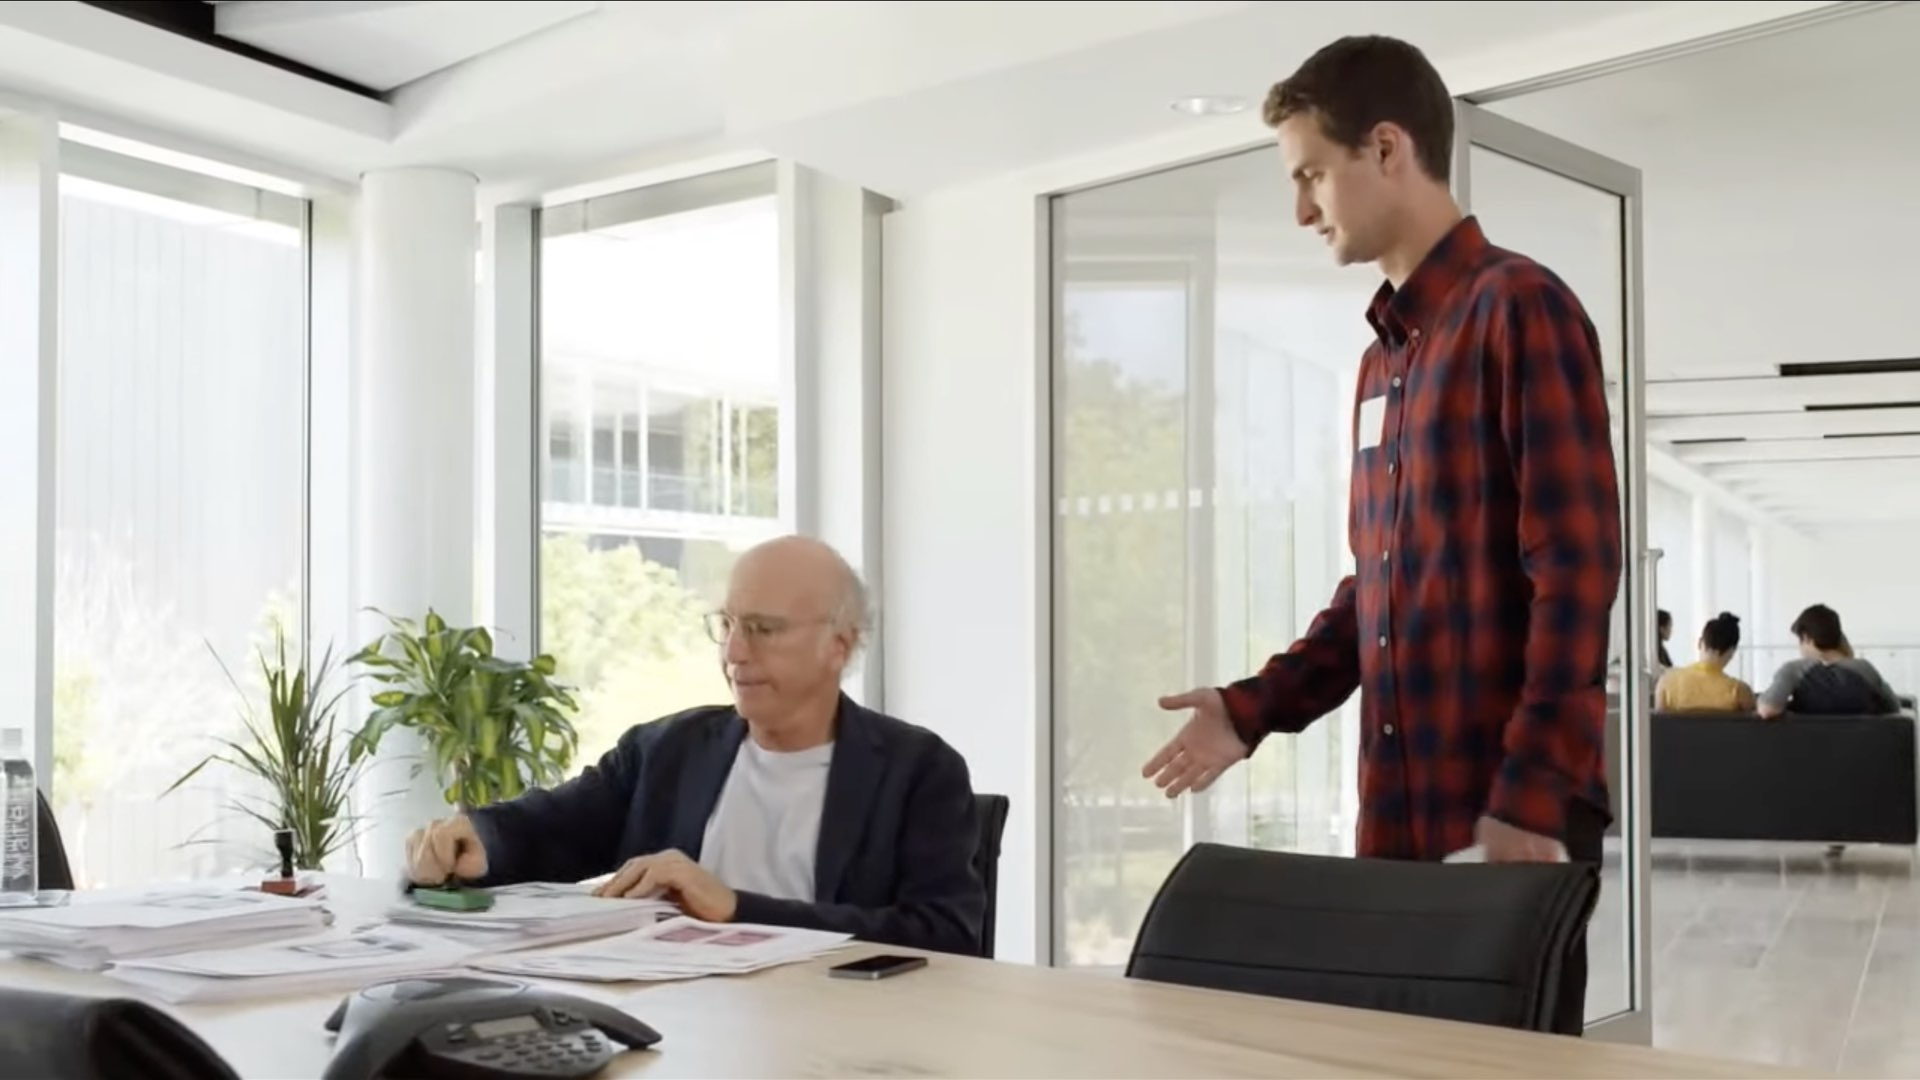 A still from Apple's unaired WWDC14 opening film showing Larry David as an app approval specialist and Snapchat founder Evan Spiegel